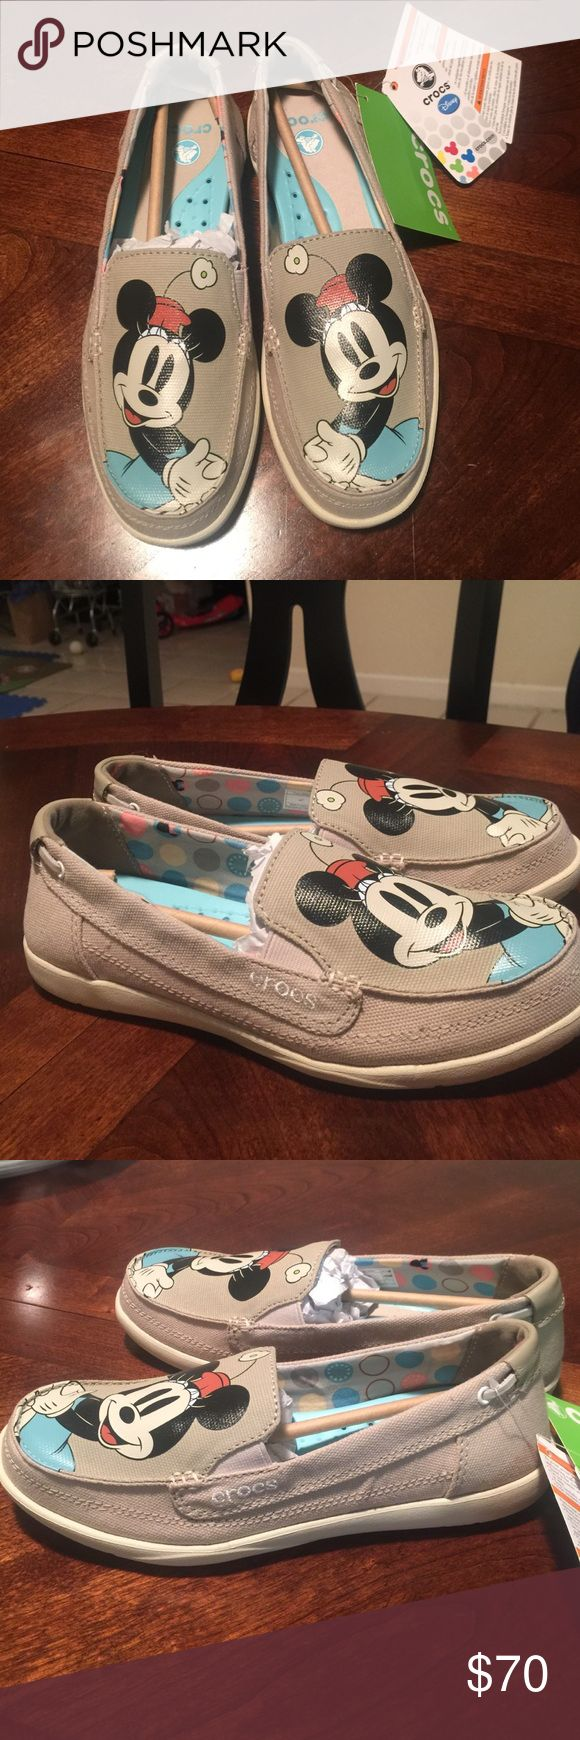 Disney Minnie Mouse Crocs Mickey size 7 These are soft brand new never worn Minnie Mouse Crocs adult size 7 from Disney parks. Tan/beige color. Slip ons canvas and leather. Made by Crocs. Make me an offer! CROCS Shoes Flats & Loafers